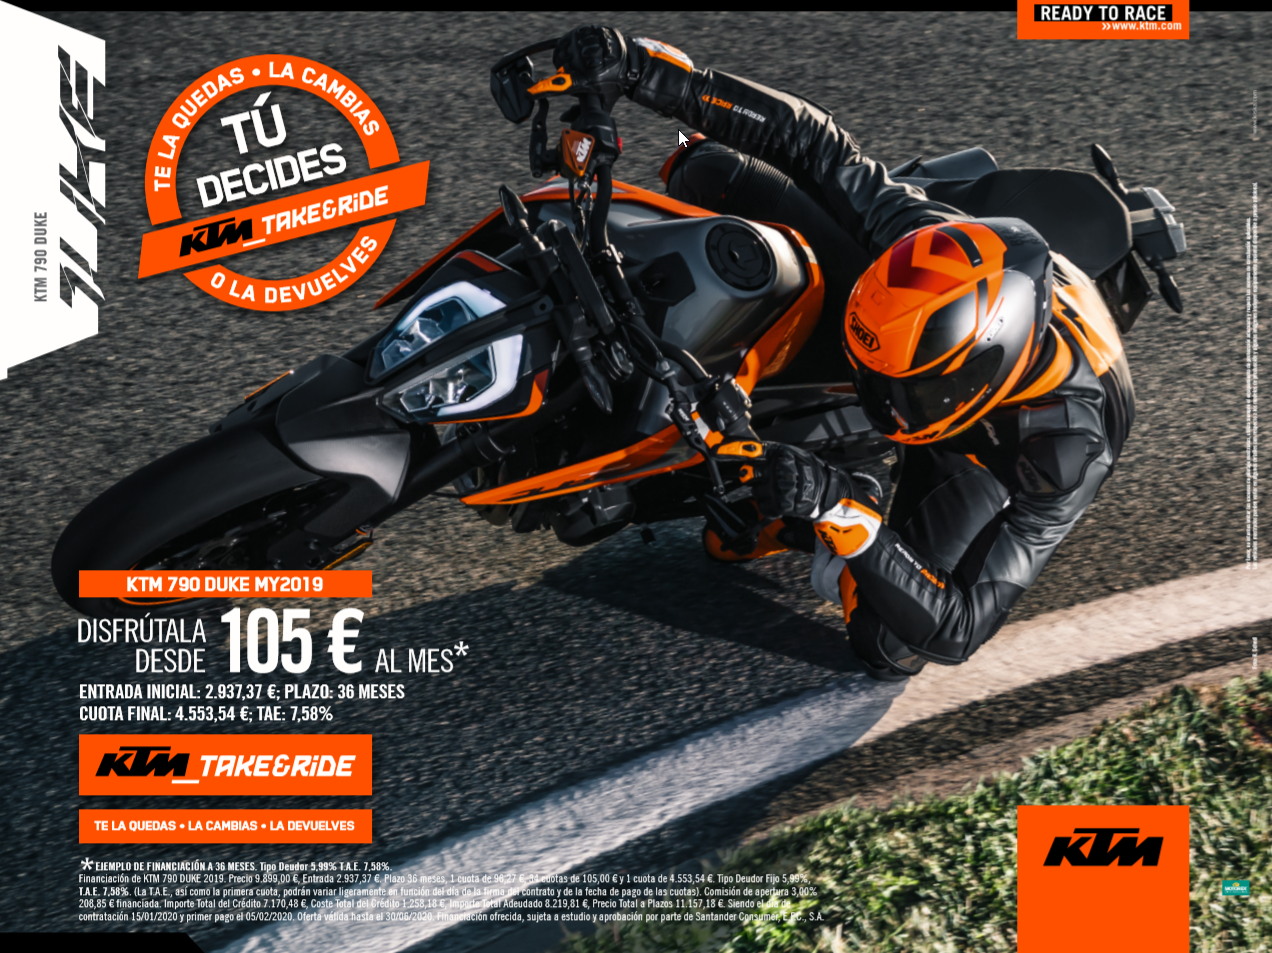 KTM Duke 790 financiación TAKE&RIDE desde 105€ al mes